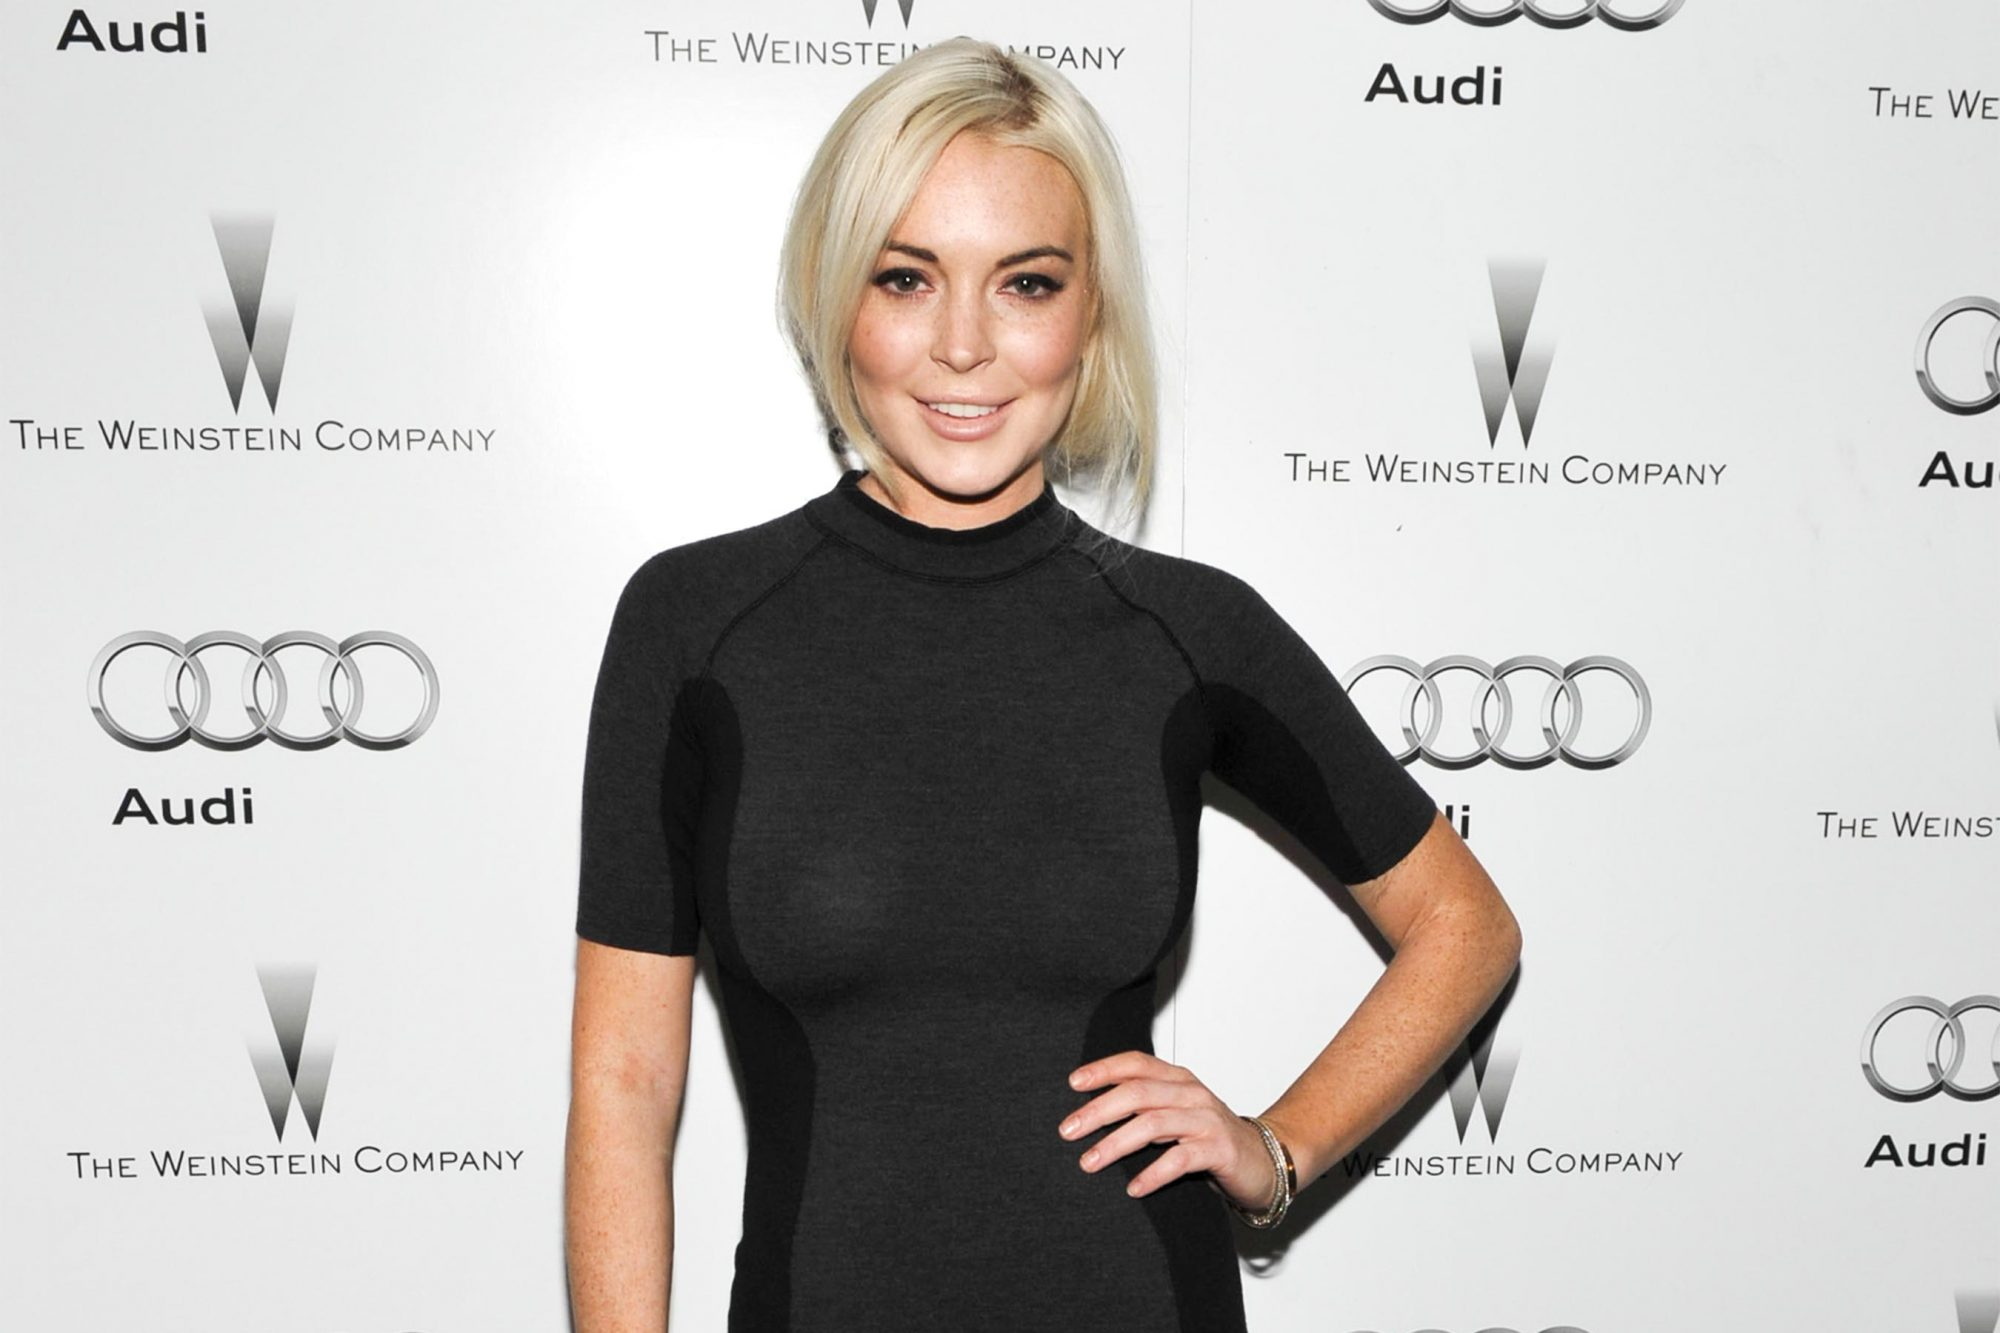 LOS ANGELES, CA - JANUARY 11: Actress Lindsay Lohan attends the party hosted by the Weinstein Company and Audi to Celebrate Awards Season at Chateau Marmont on January 11, 2012 in Los Angeles, California. (Photo by John Shearer/Getty Images for Audi)